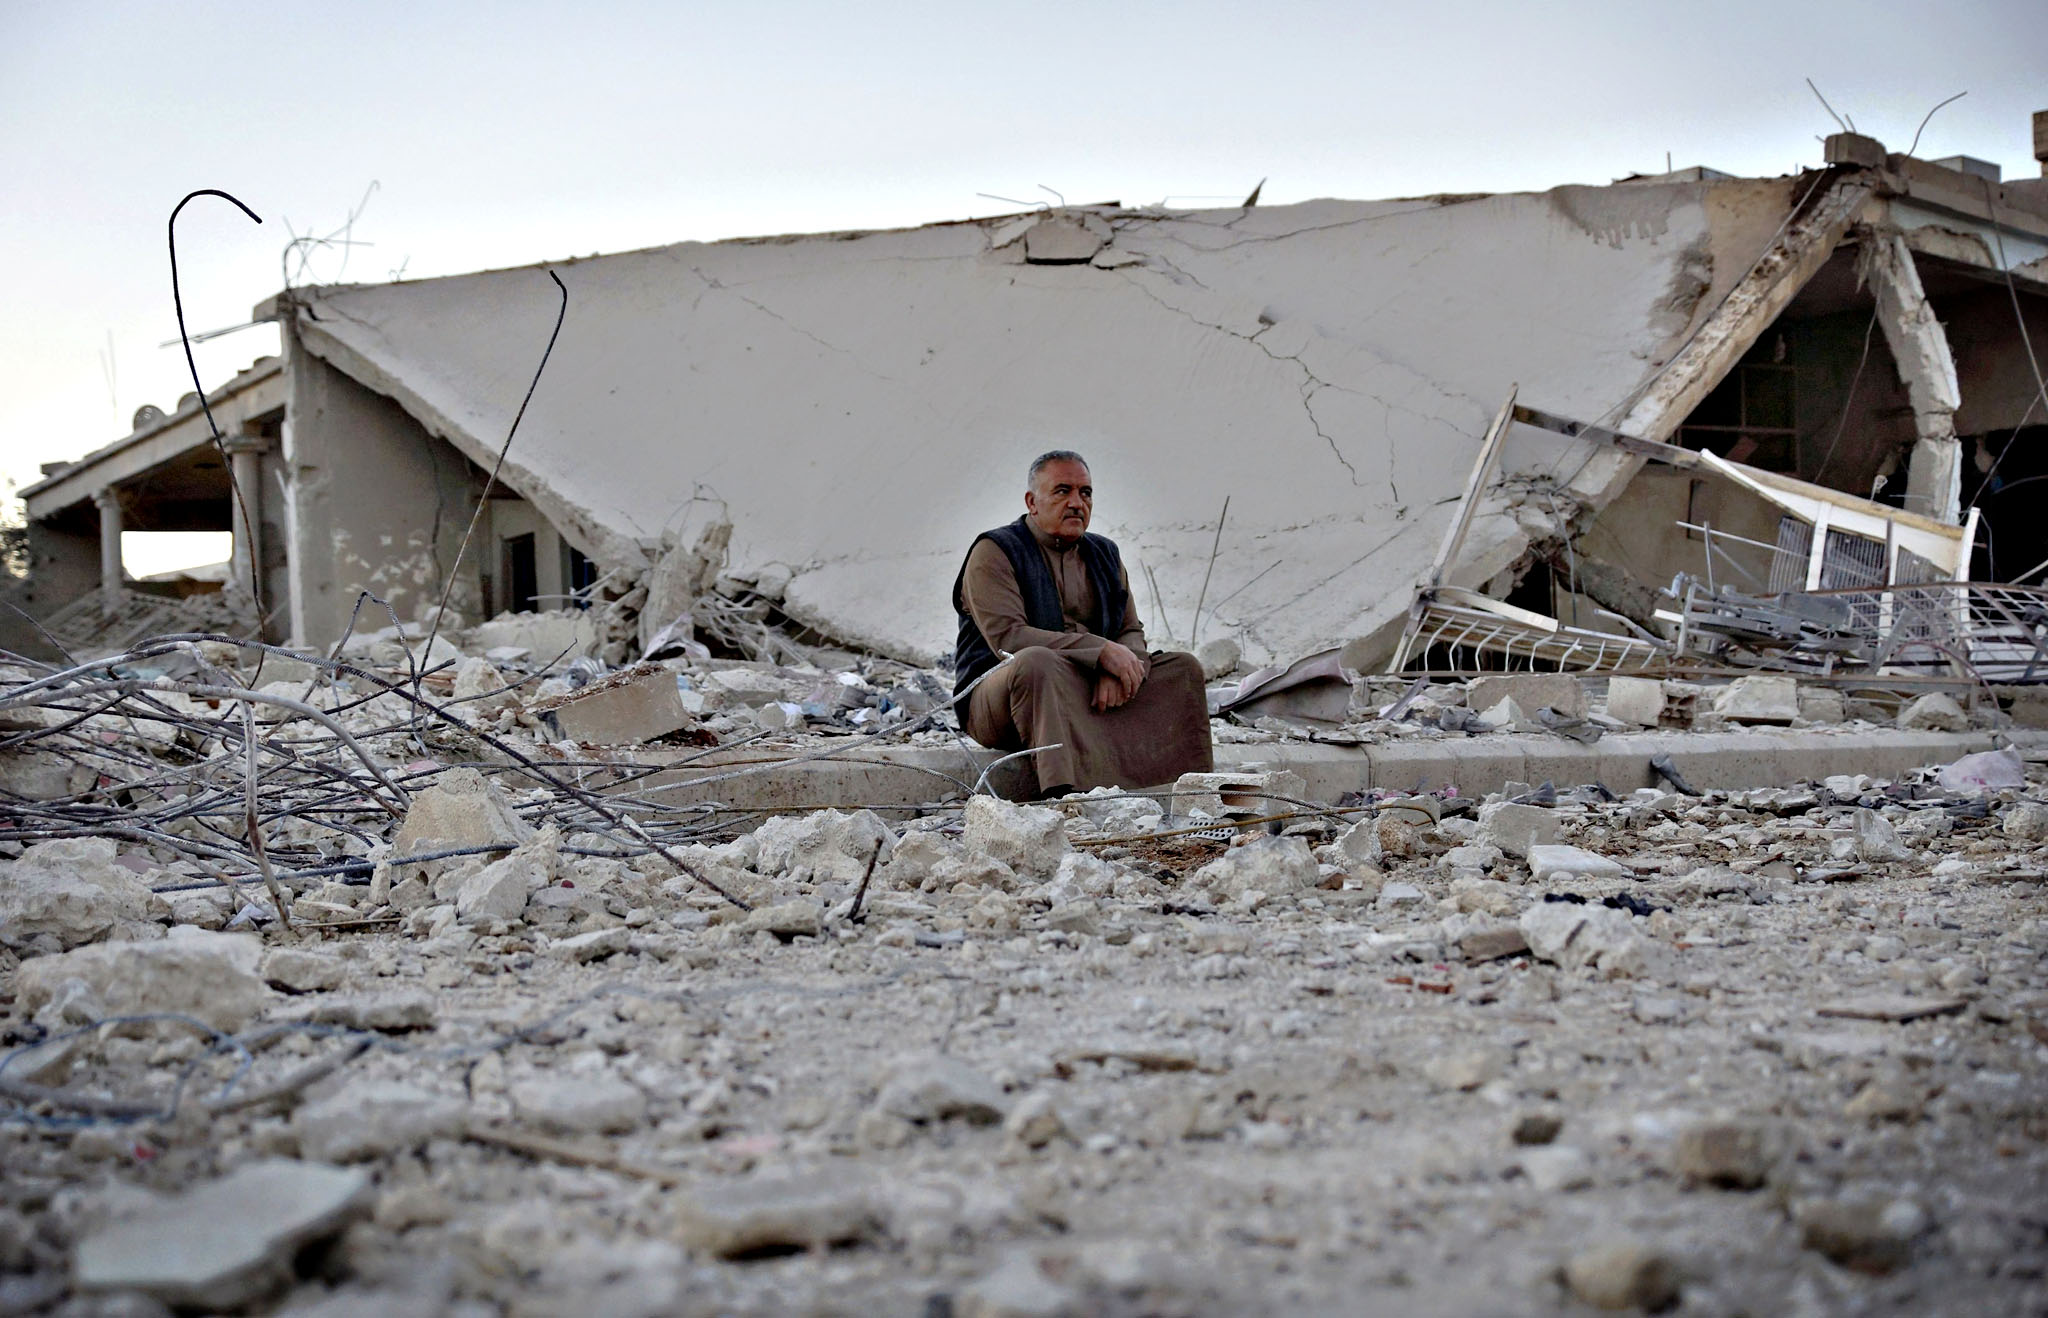 A man rests in a damaged site from what activists said was barrel bombs dropped by forces loyal to Syria's president Al-Assad in the southern town of Bosra al-Sham, Deraa province, Syria...A man rests in a damaged site from what activists said was barrel bombs dropped by forces loyal to Syria's president Bashar Al-Assad in the historic Syrian southern town of Bosra al-Sham, Deraa